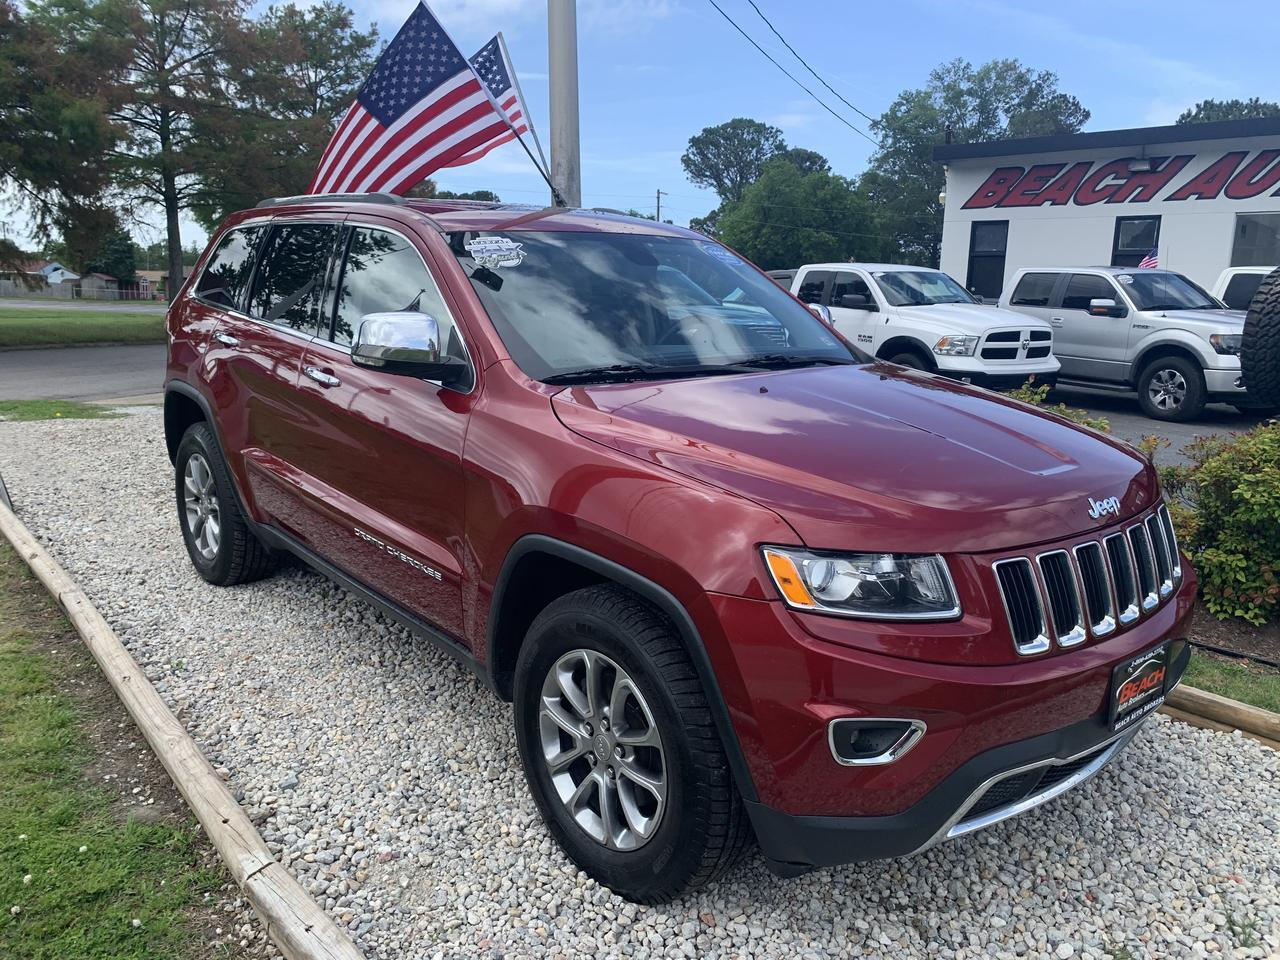 2014 JEEP GRAND CHEROKEE LIMITED 4X4, WARRANTY, LEATHER, SUNROOF, NAV, HEATED SEATS, BLUETOOTH, BACKUP CAM, REMOTE START! Norfolk VA